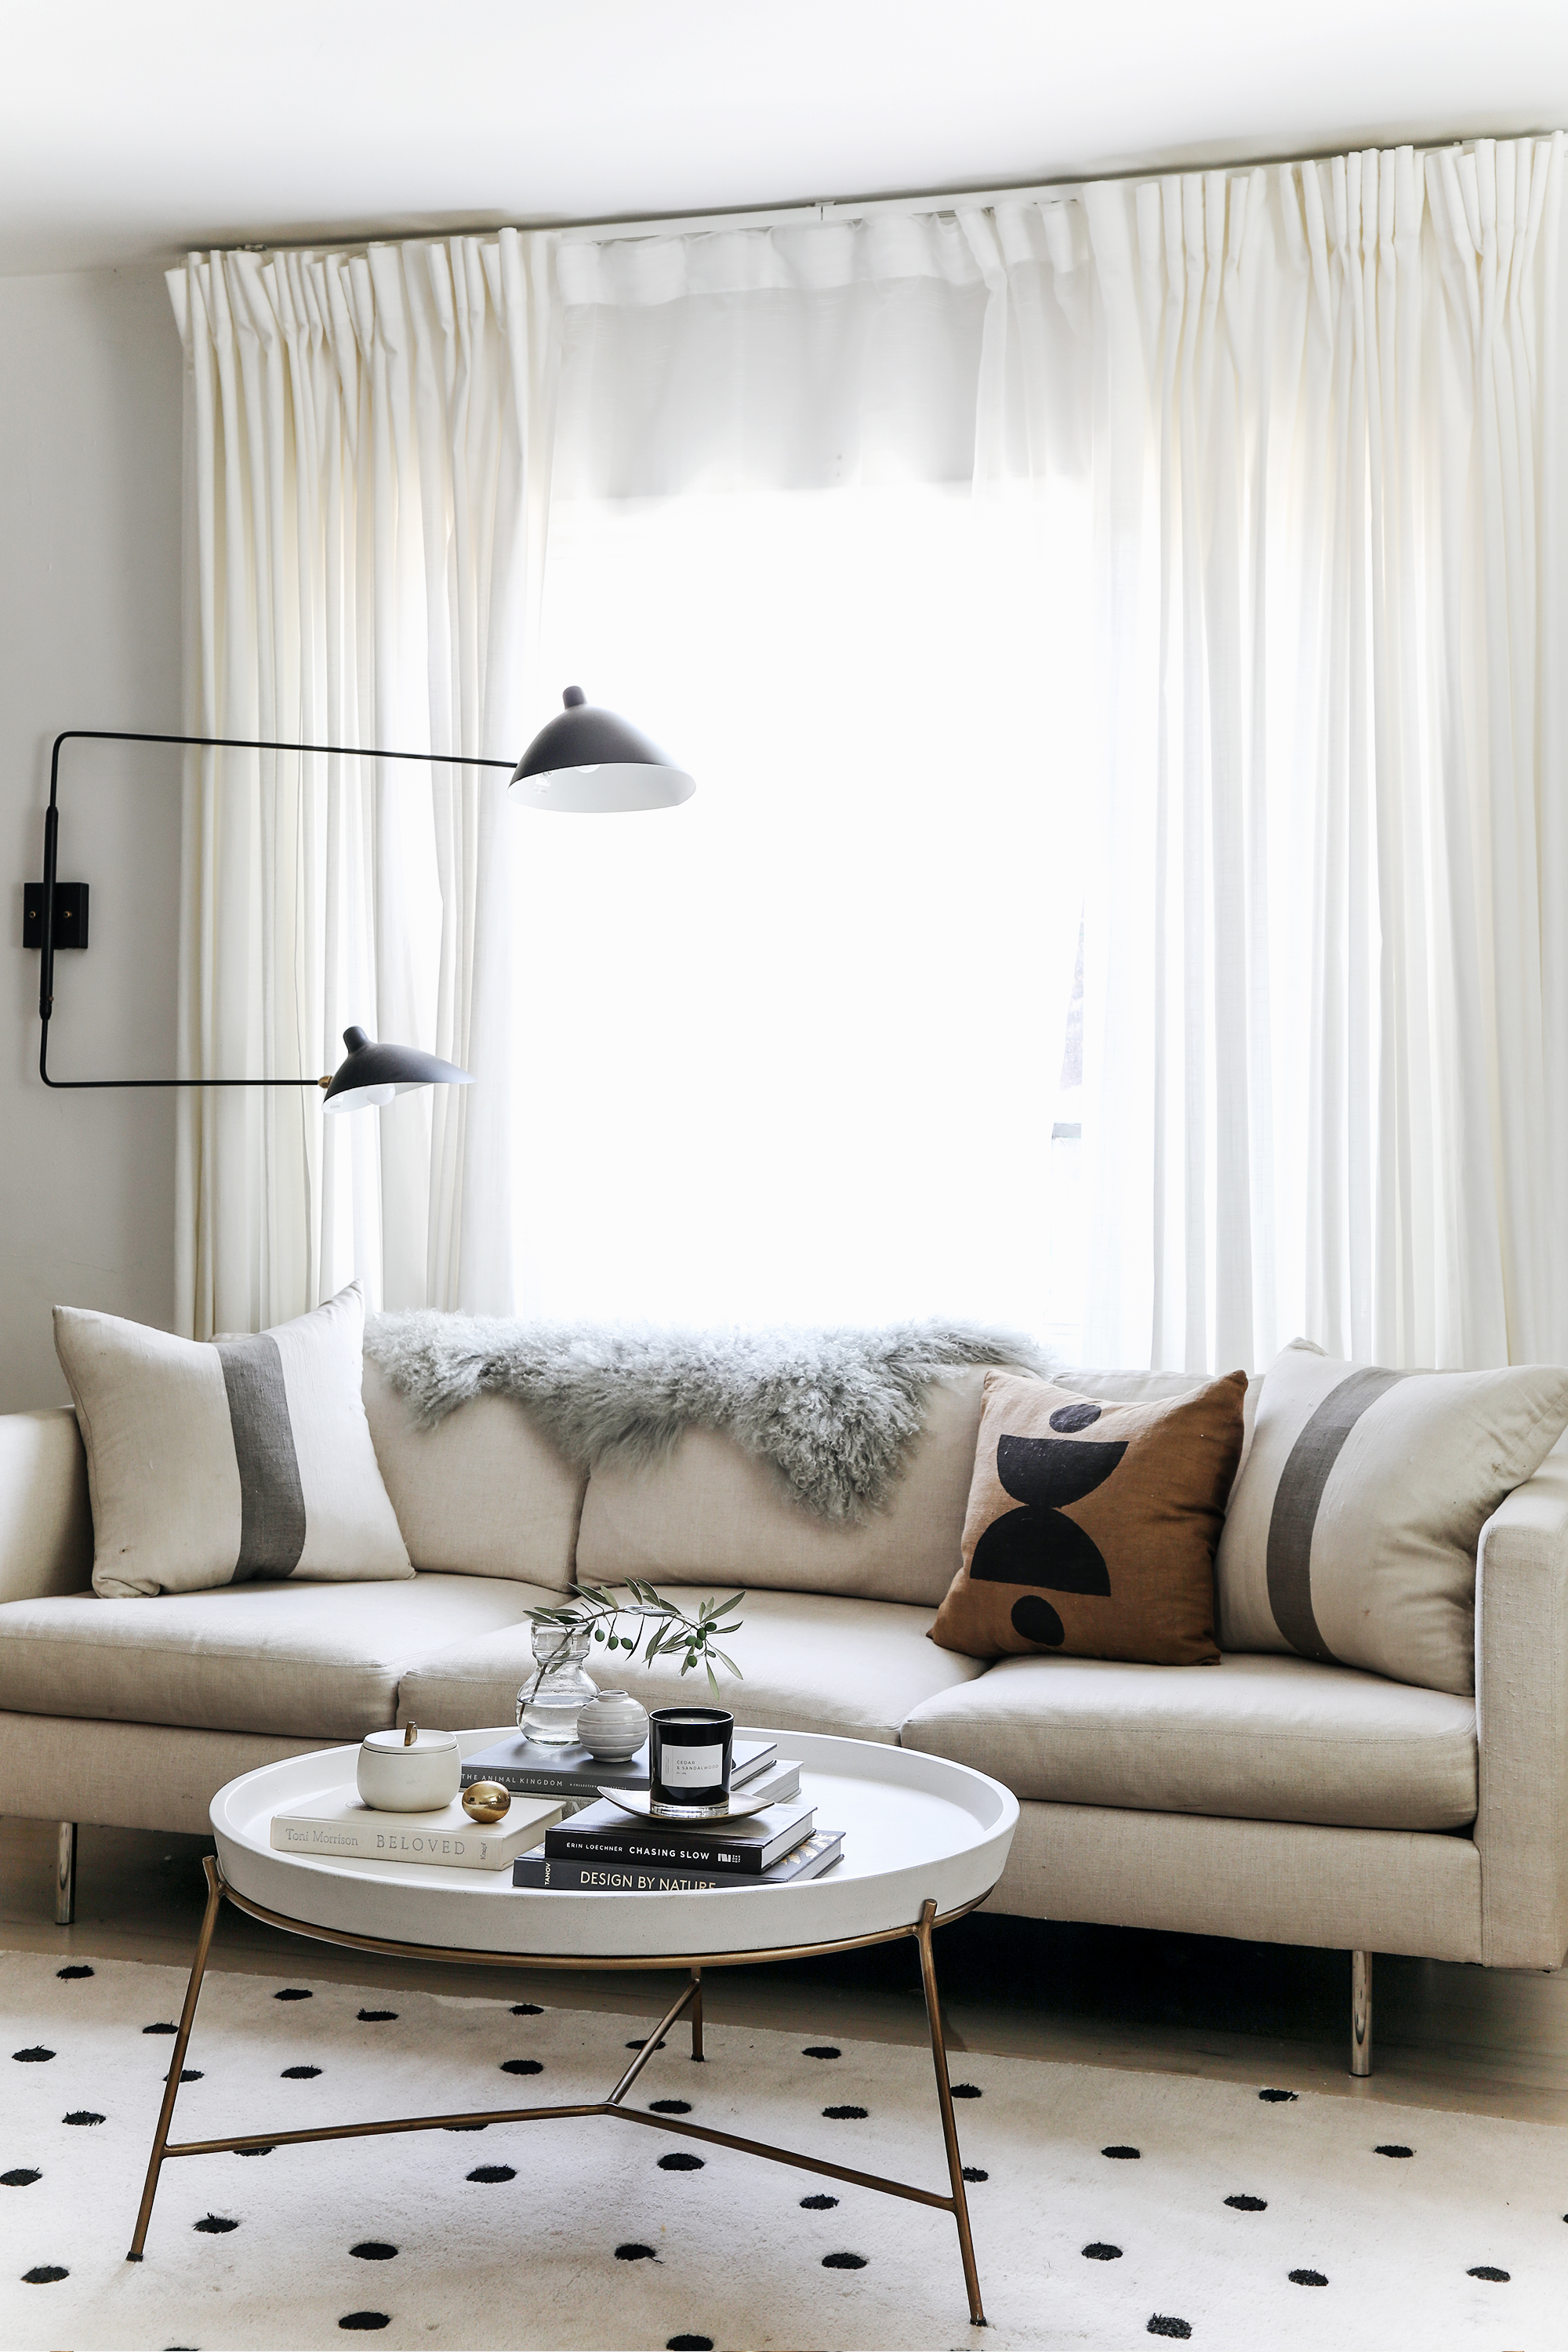 sunpan remy coffee table in a neutral modern living room